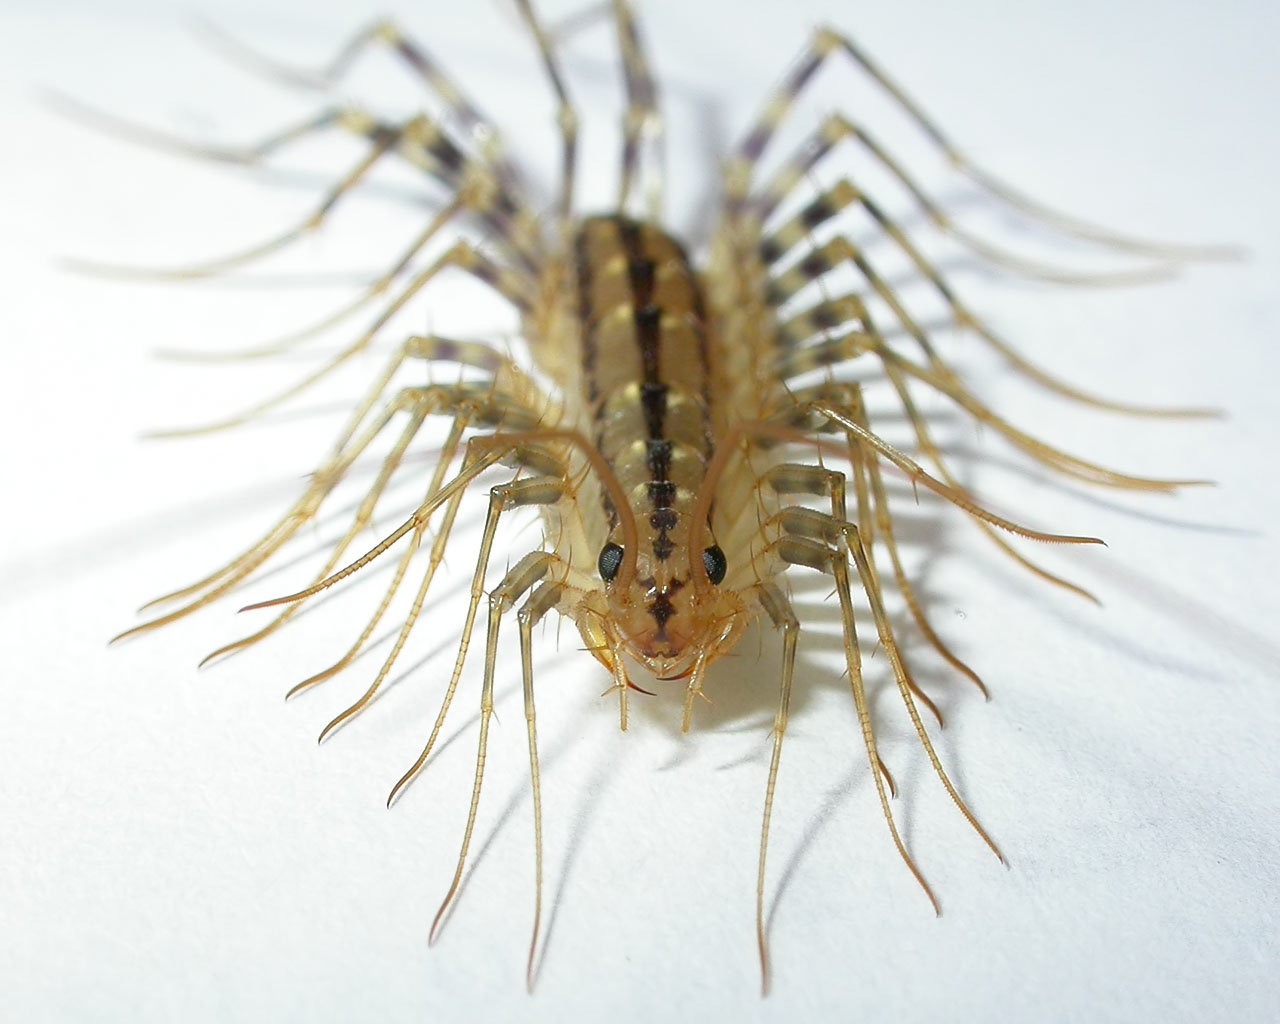 Dorm kitchen cleaning and pest prevention ariapluscat for How to get rid of centipedes in my bathroom